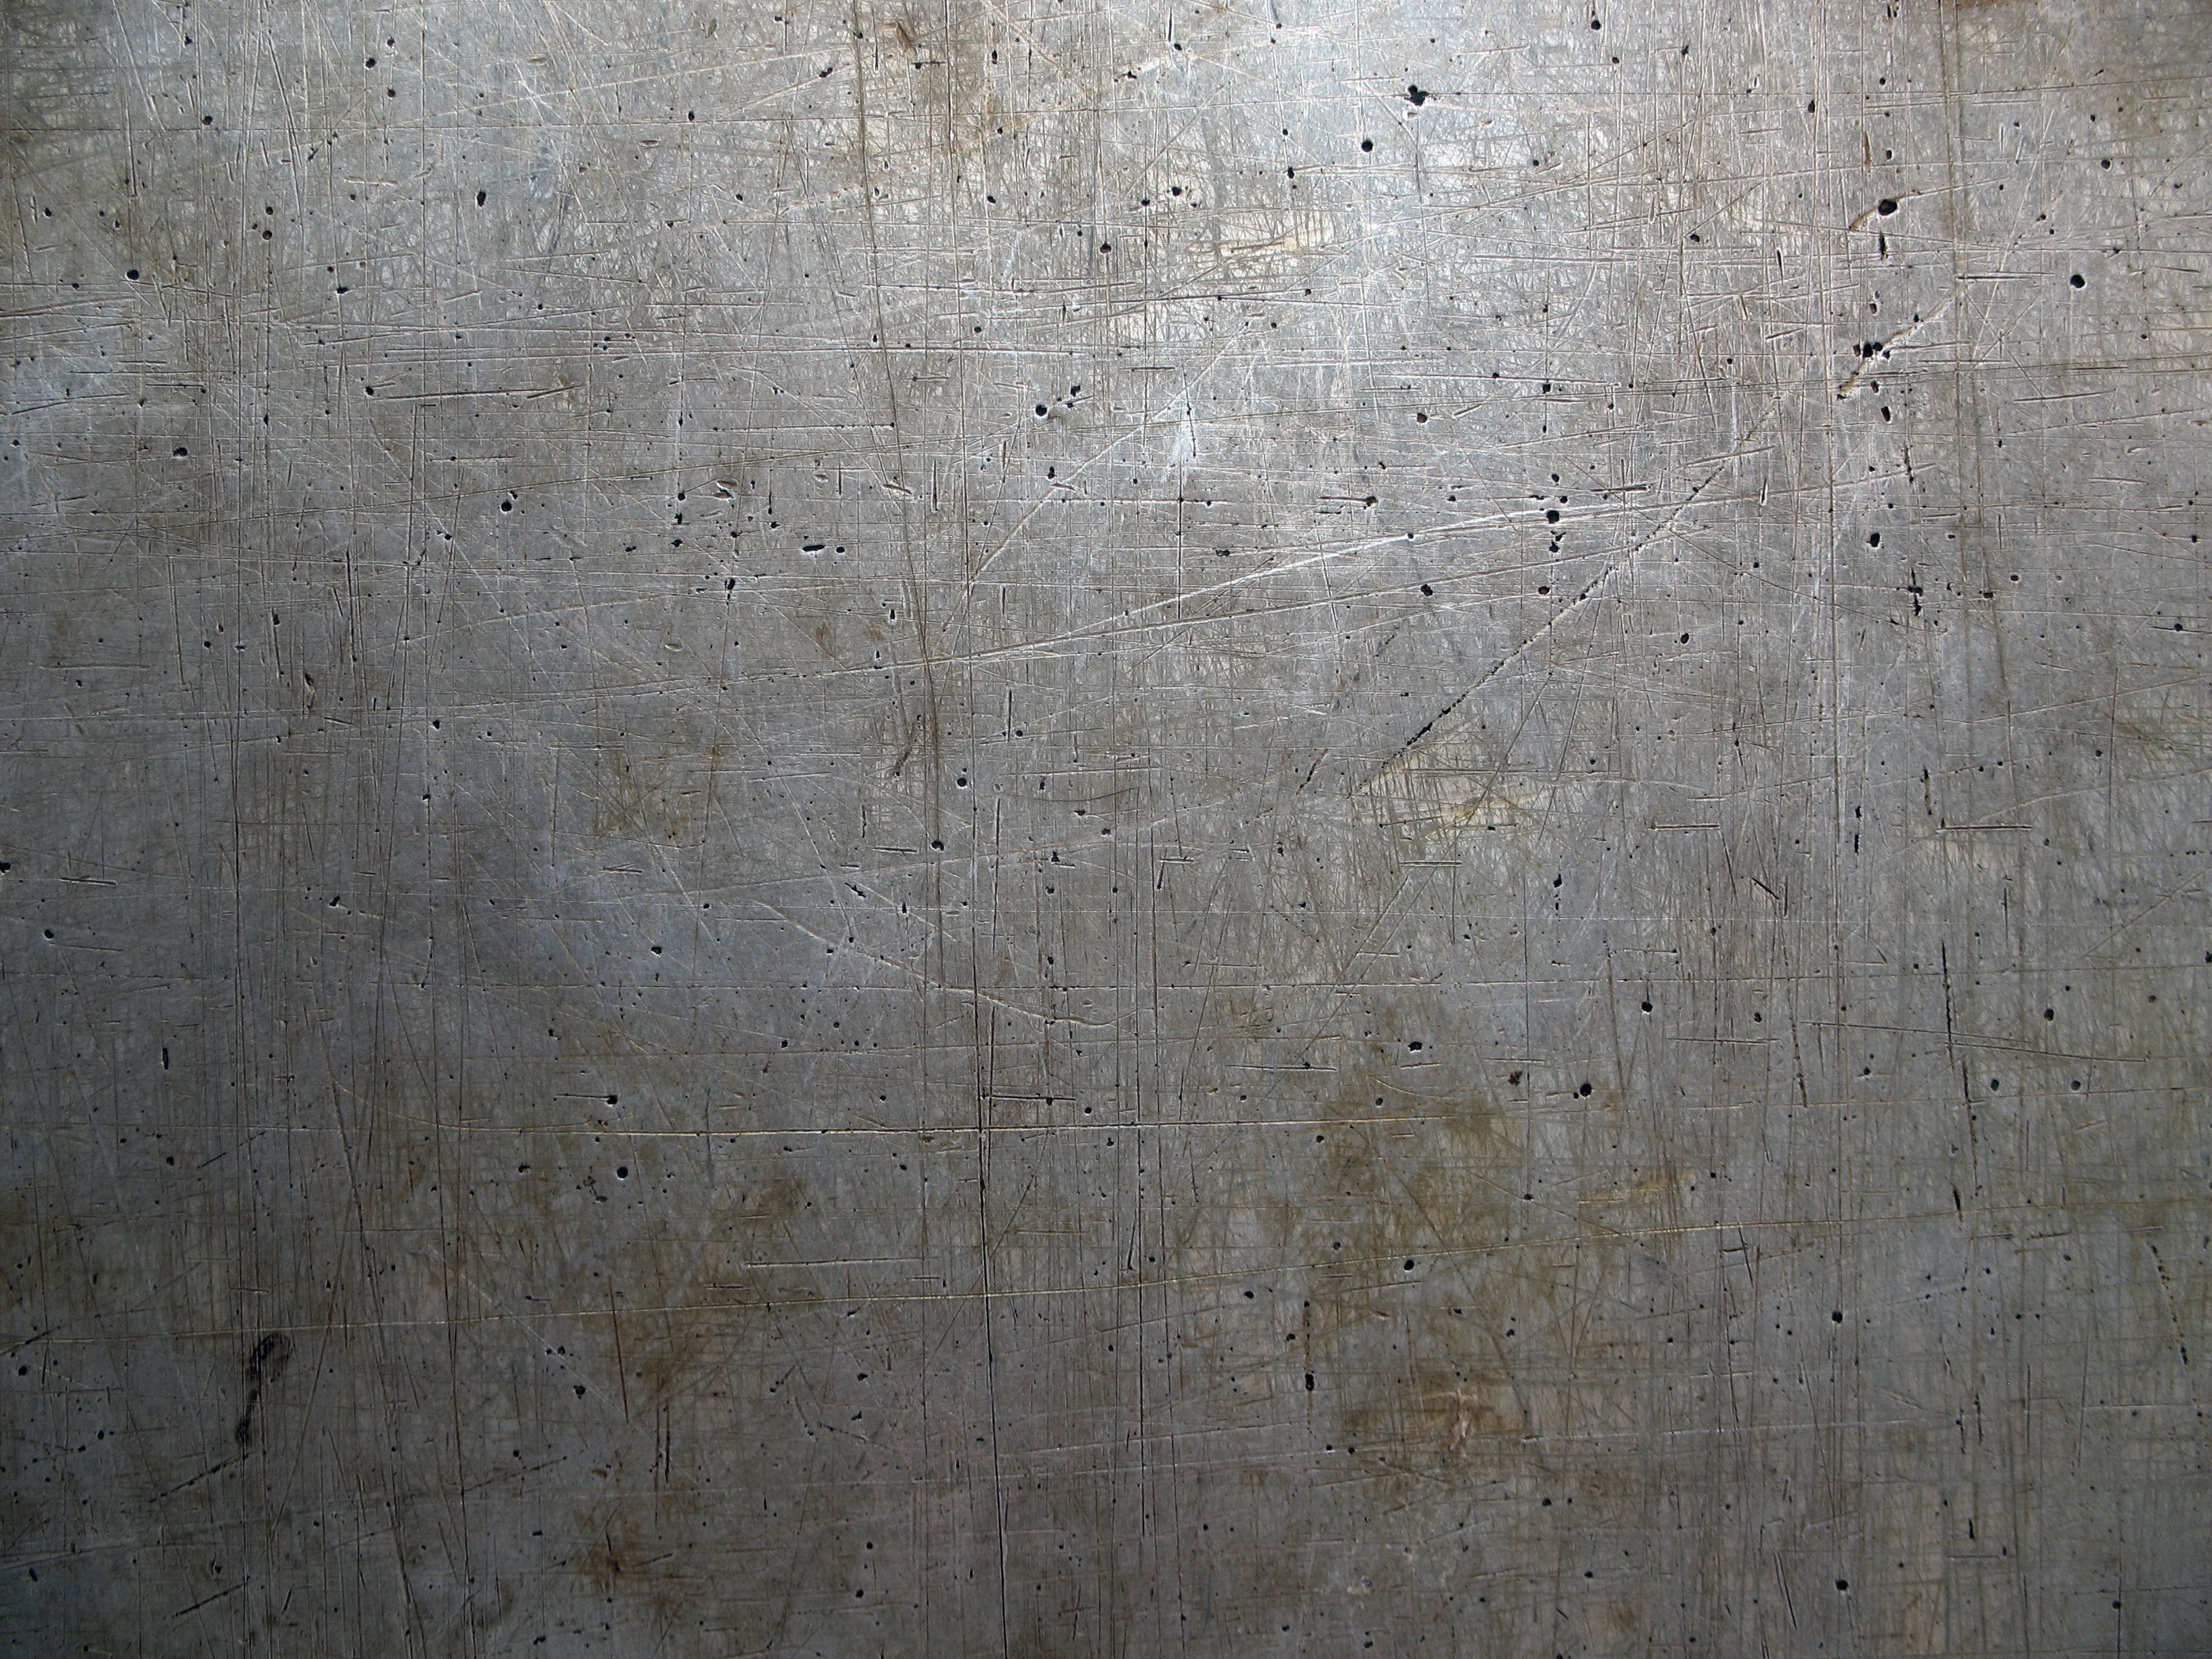 Black Wallpaper Android Scratched Metal Texture 3264 215 2448 Textures Pinterest